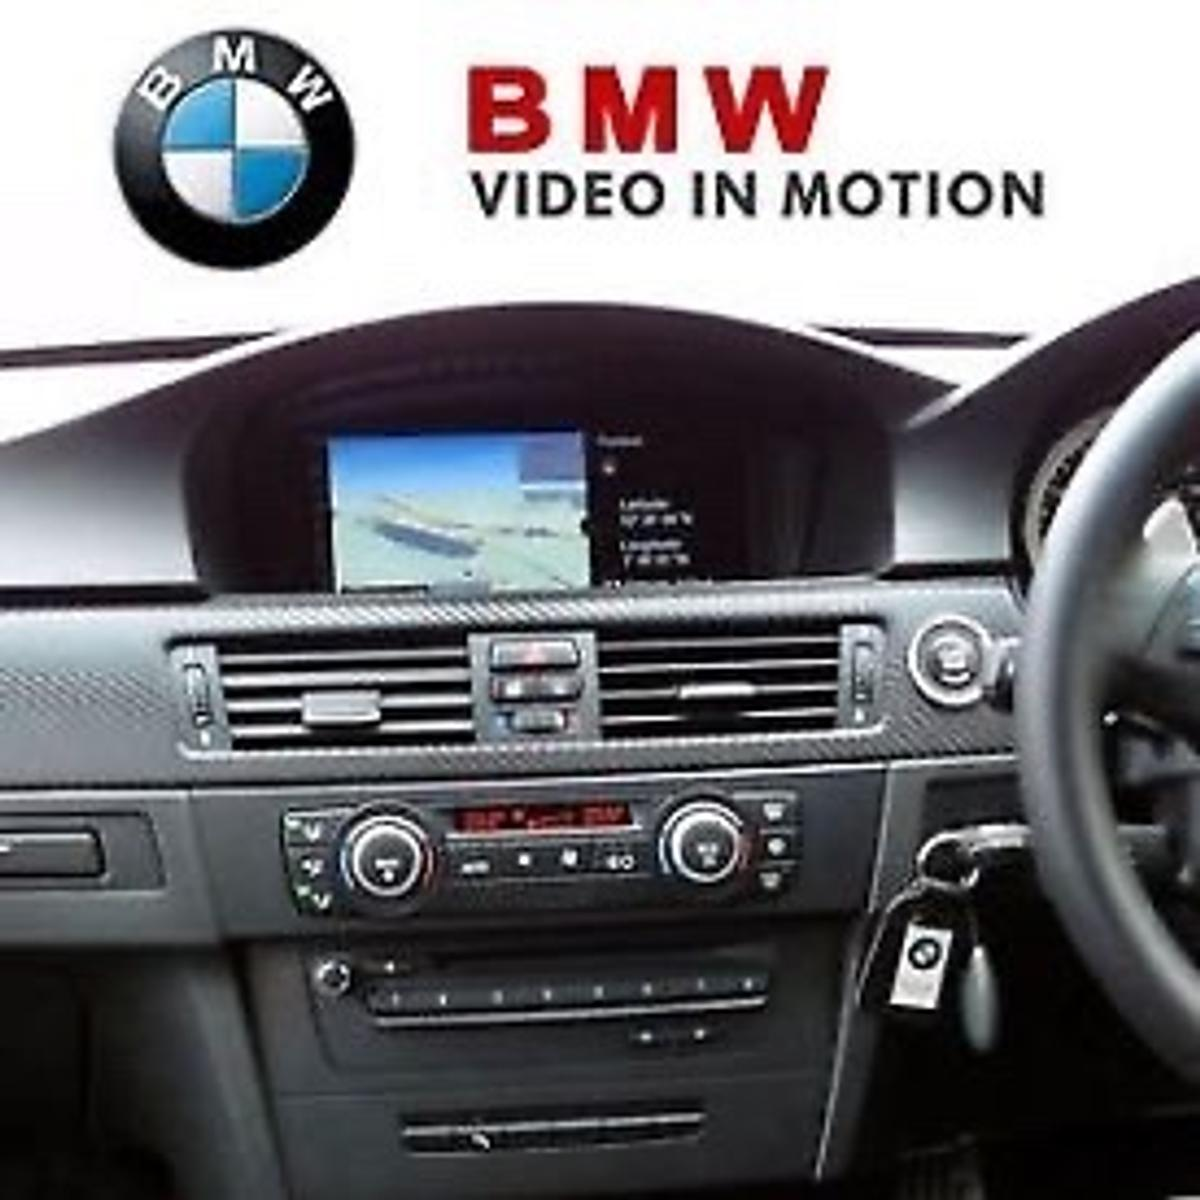 Offering full activation of bmw video in motion meaning your dvds/usb will continue to play whilst car is in motion this works for all Bmw models that have dvd/usb video file playback